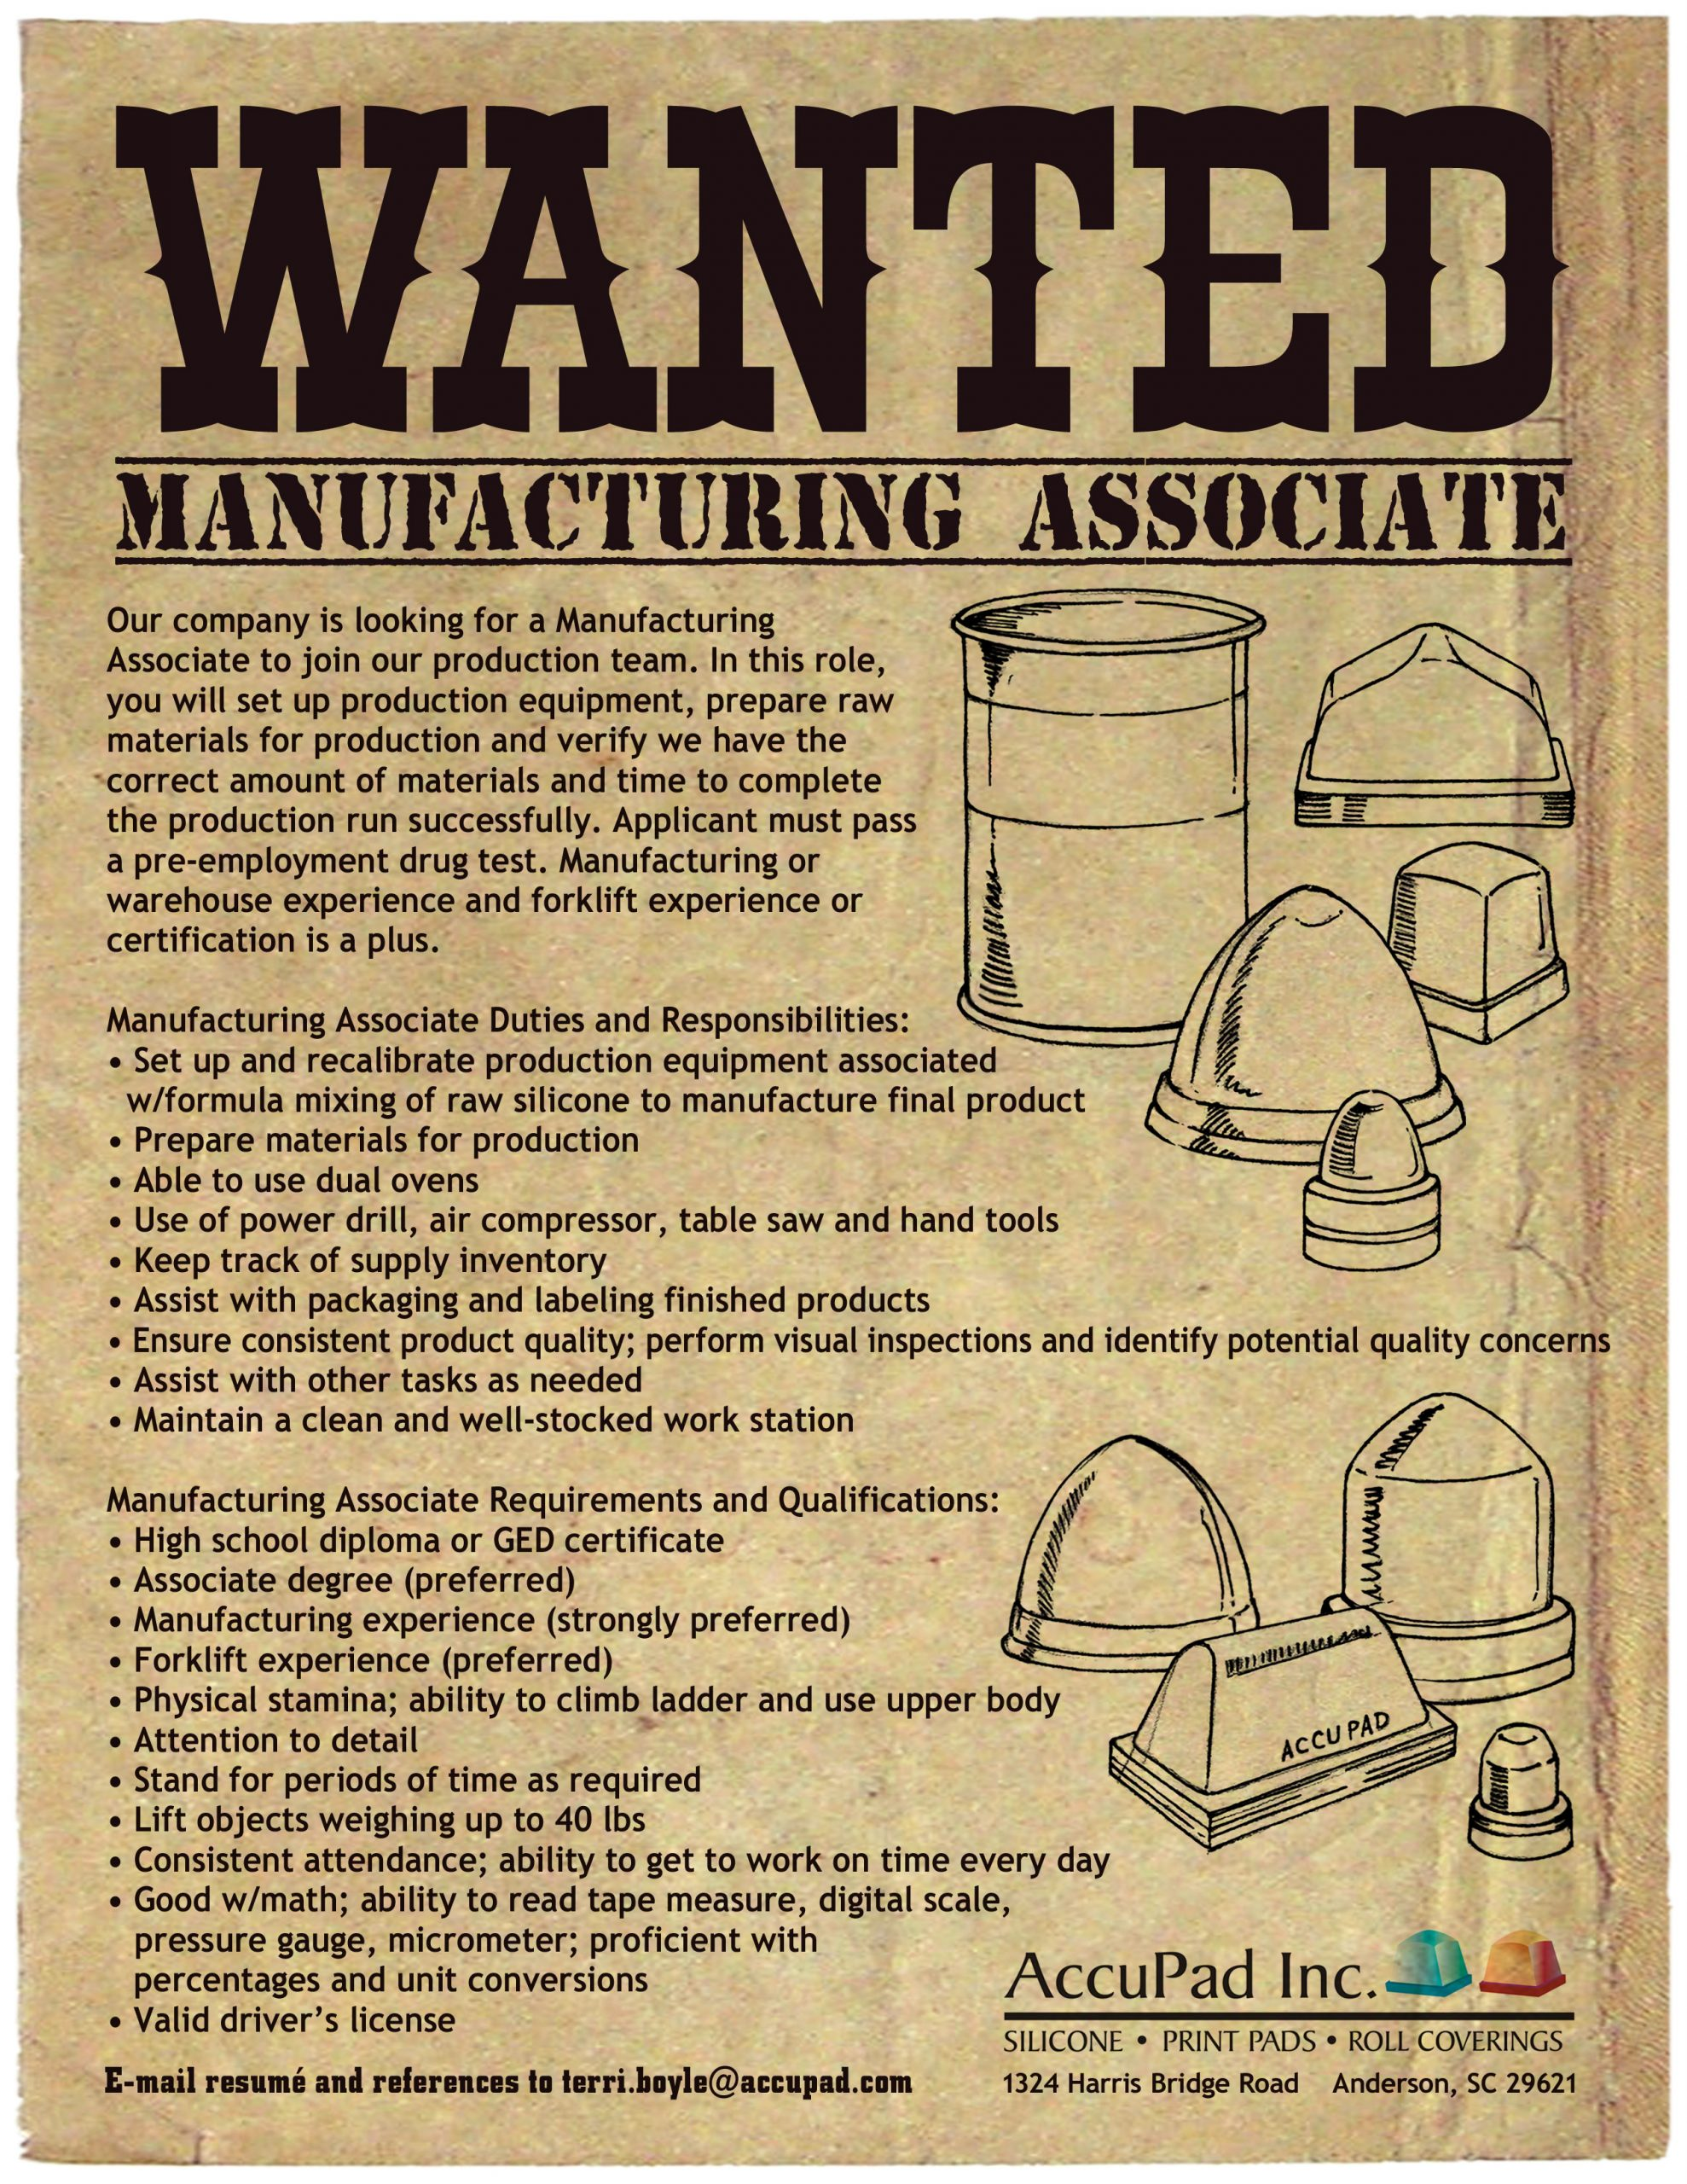 Help Wanted Poster 55/2021